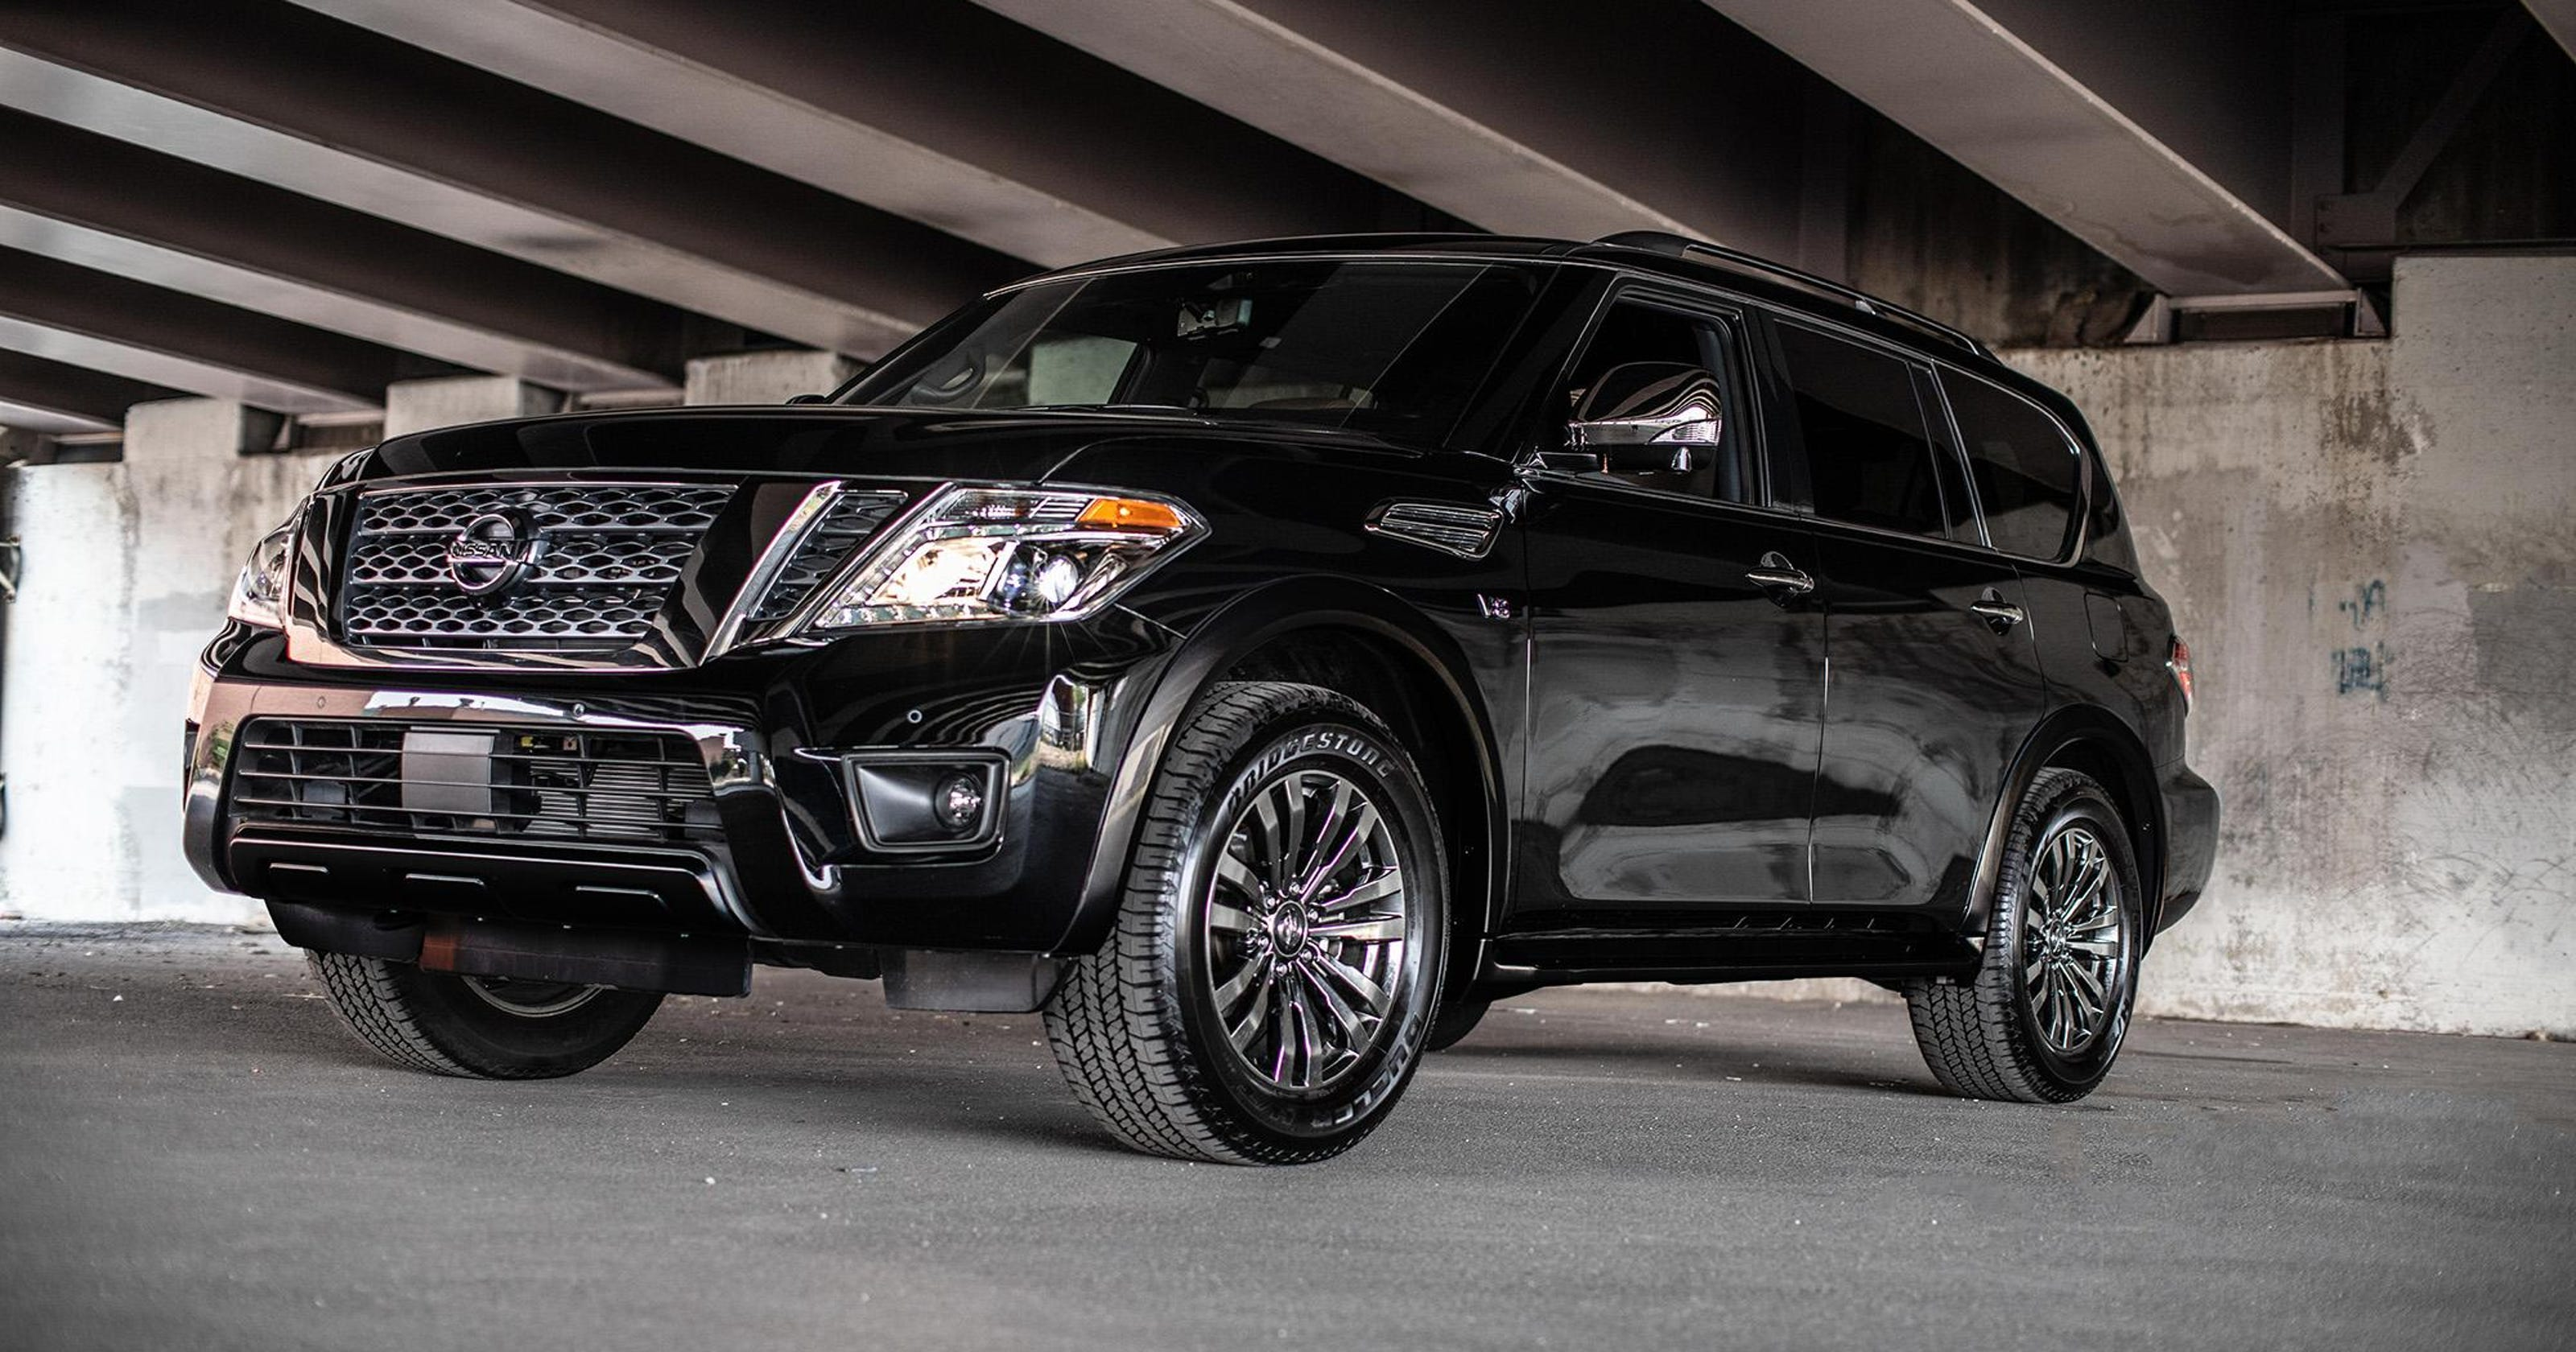 Nissan Armada returns for 2019 with a few updates